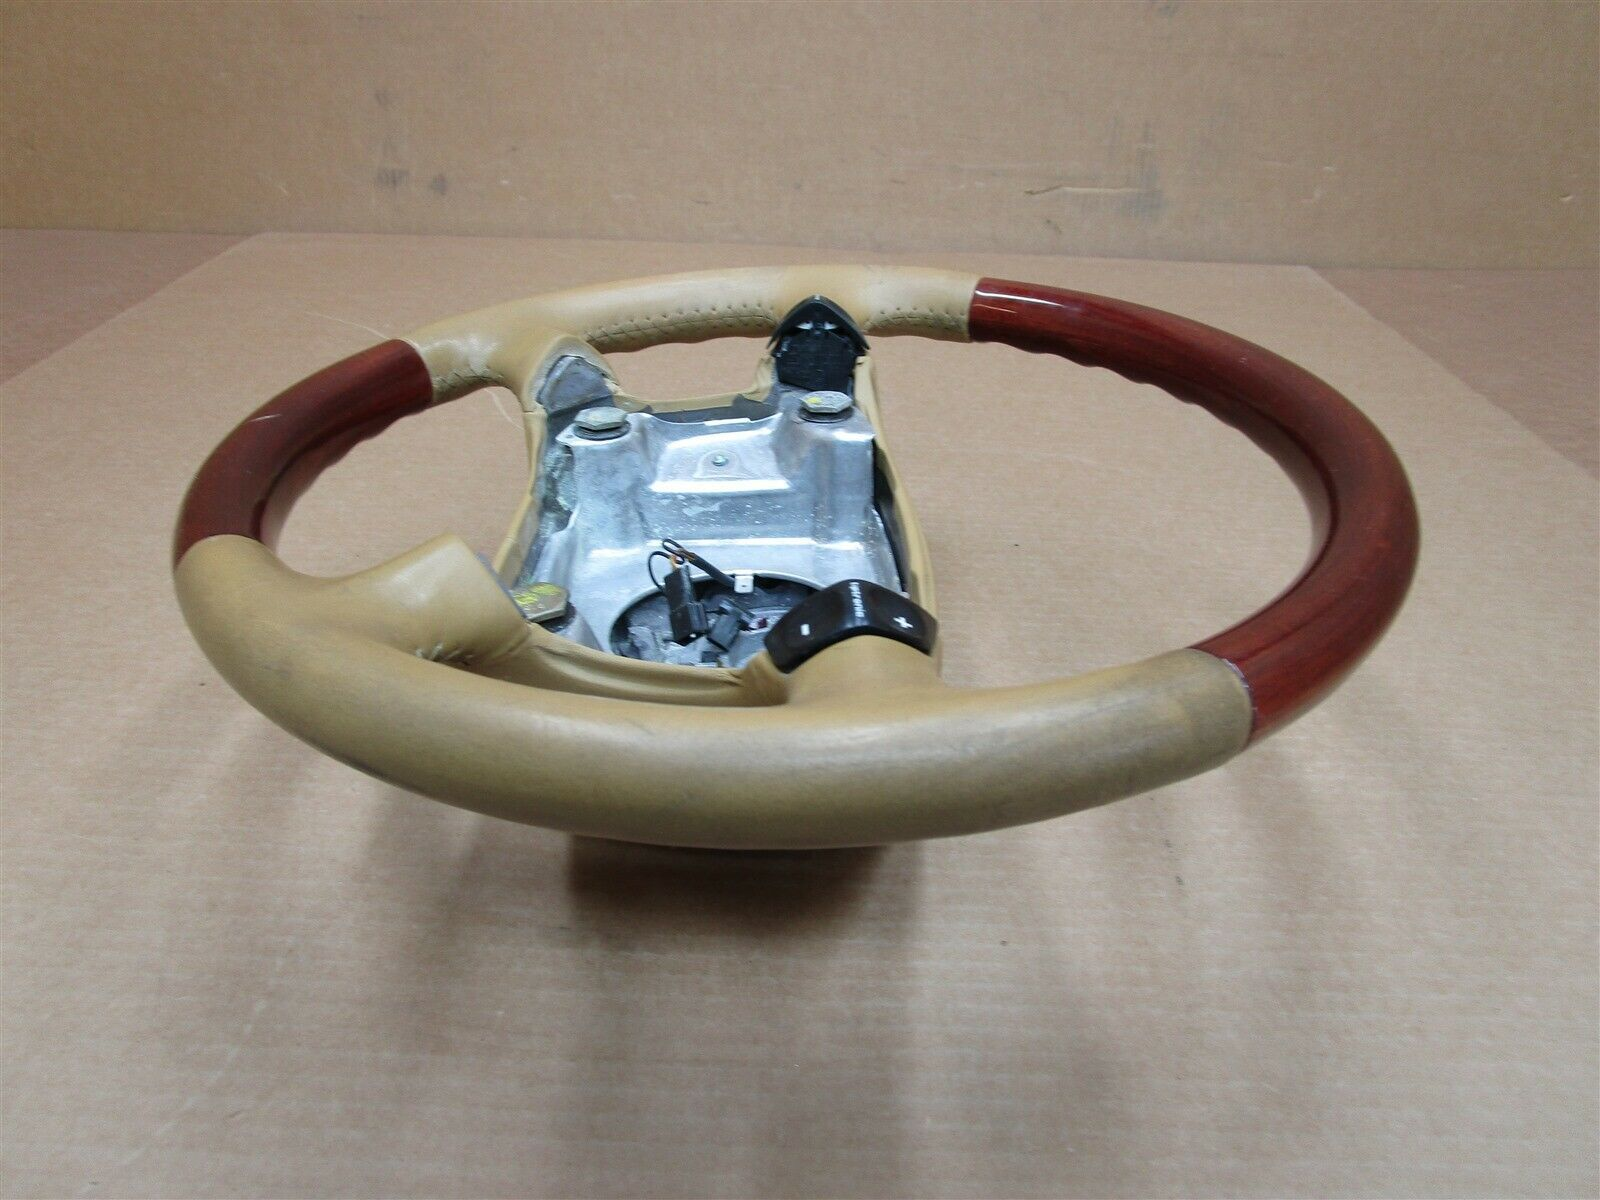 98 Boxster RWD Porsche 986 4 SPOKE Wood STEERING WHEEL 27,357 N/A